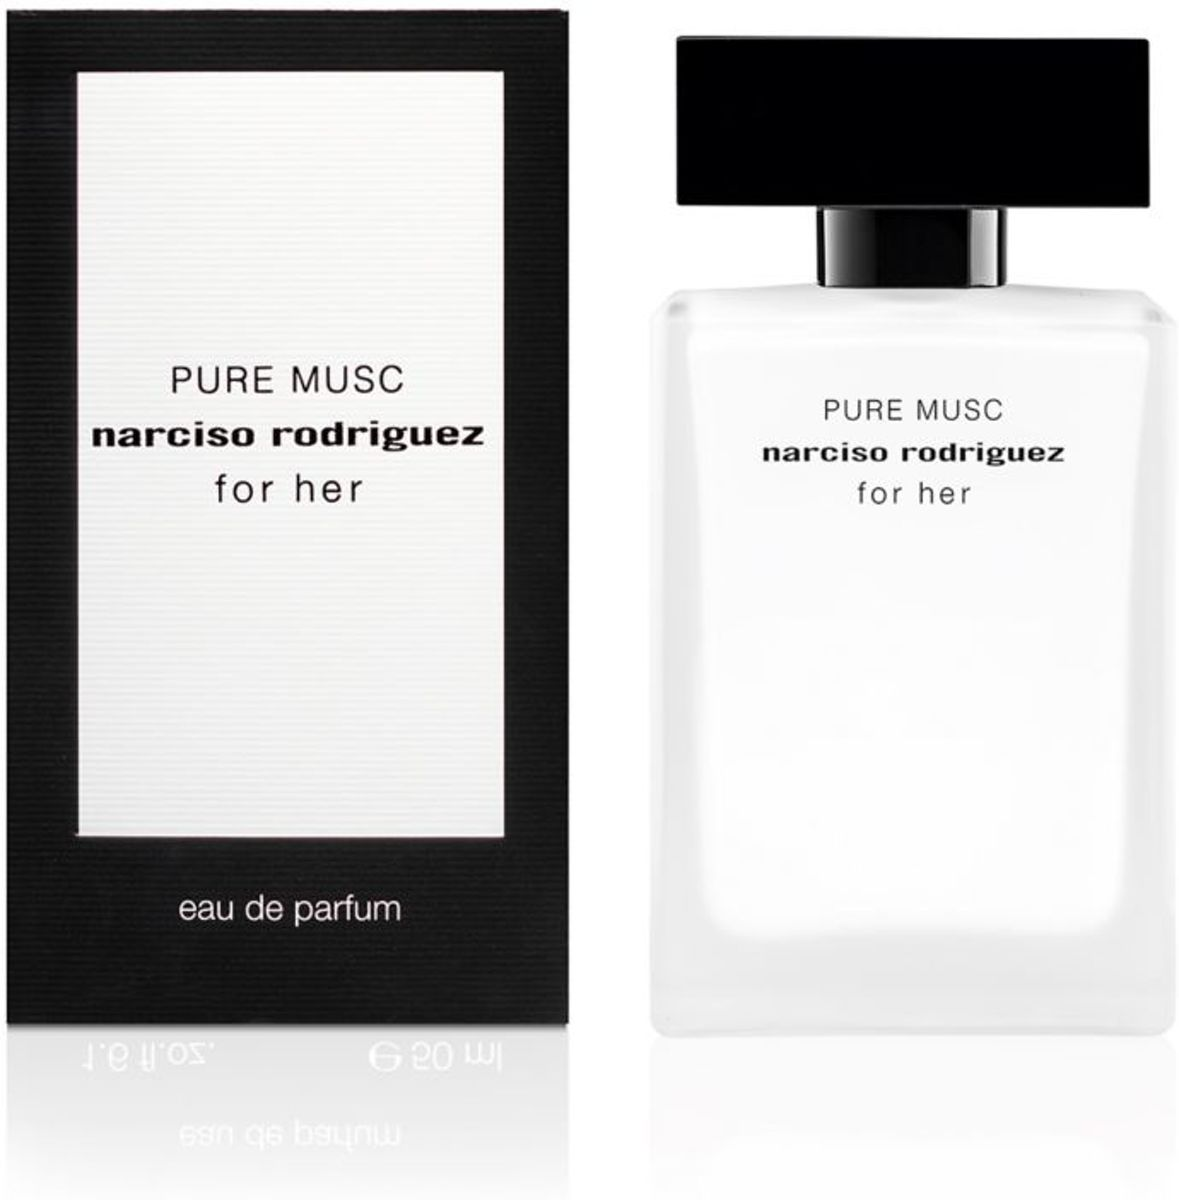 Narciso Rodriguez FOR HER PURE MUSC edp spray 100 ml